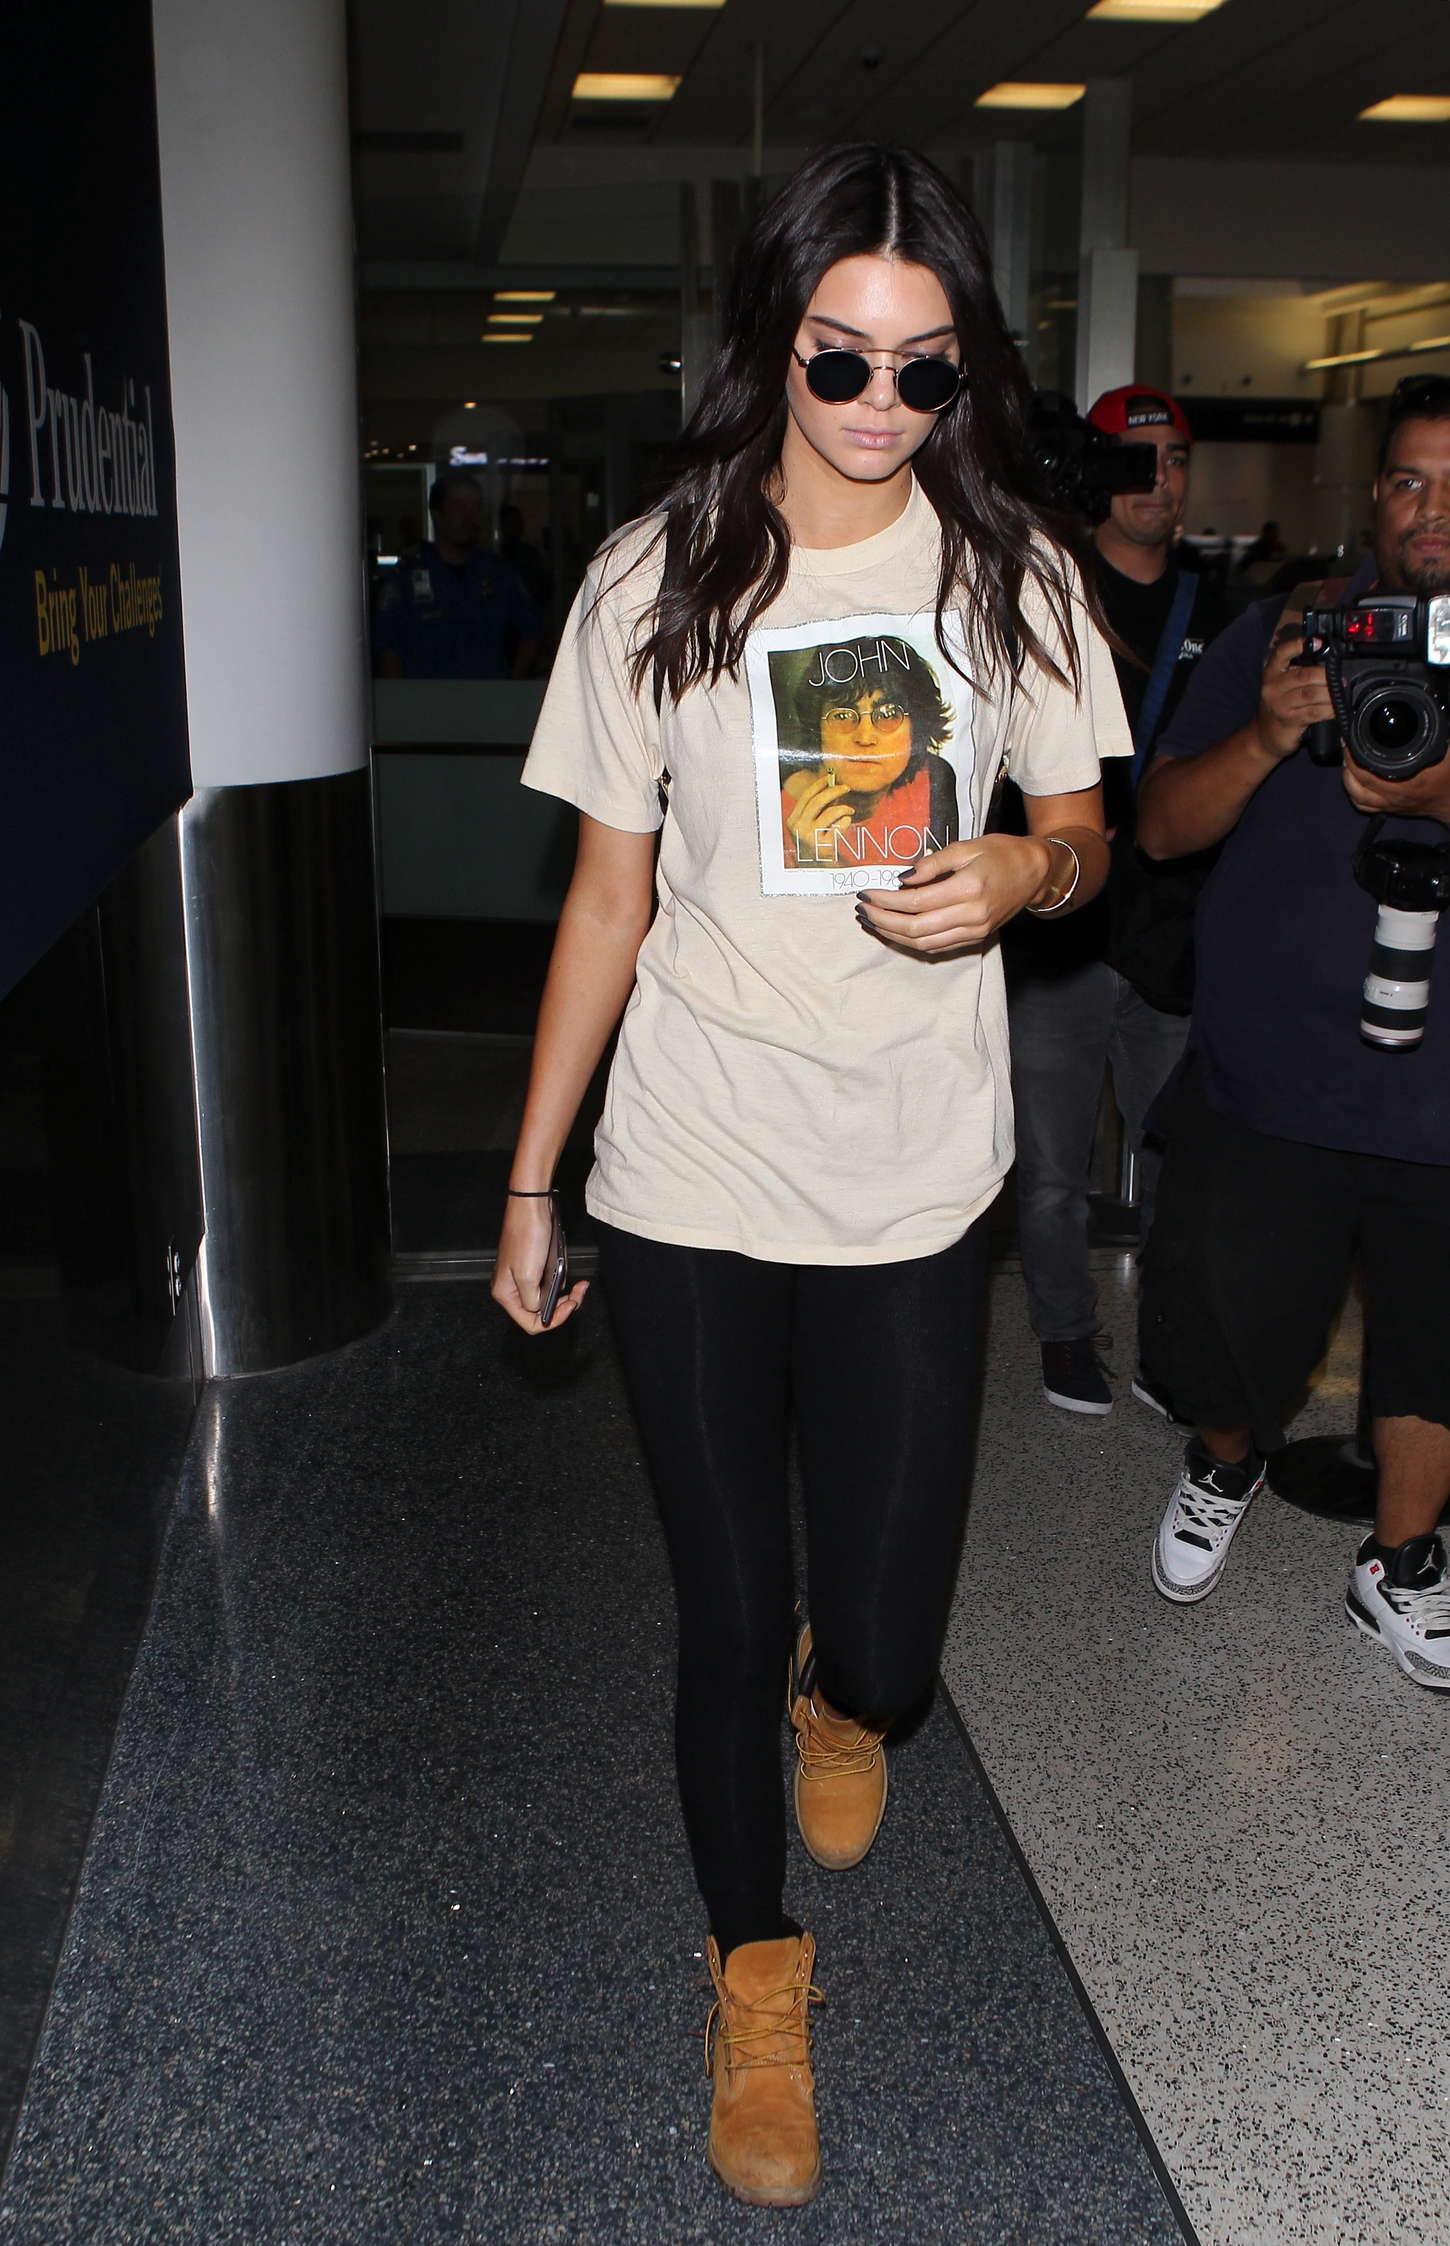 Kendall Jenner 2015 : Kendall Jenner in Tights at LAX -07